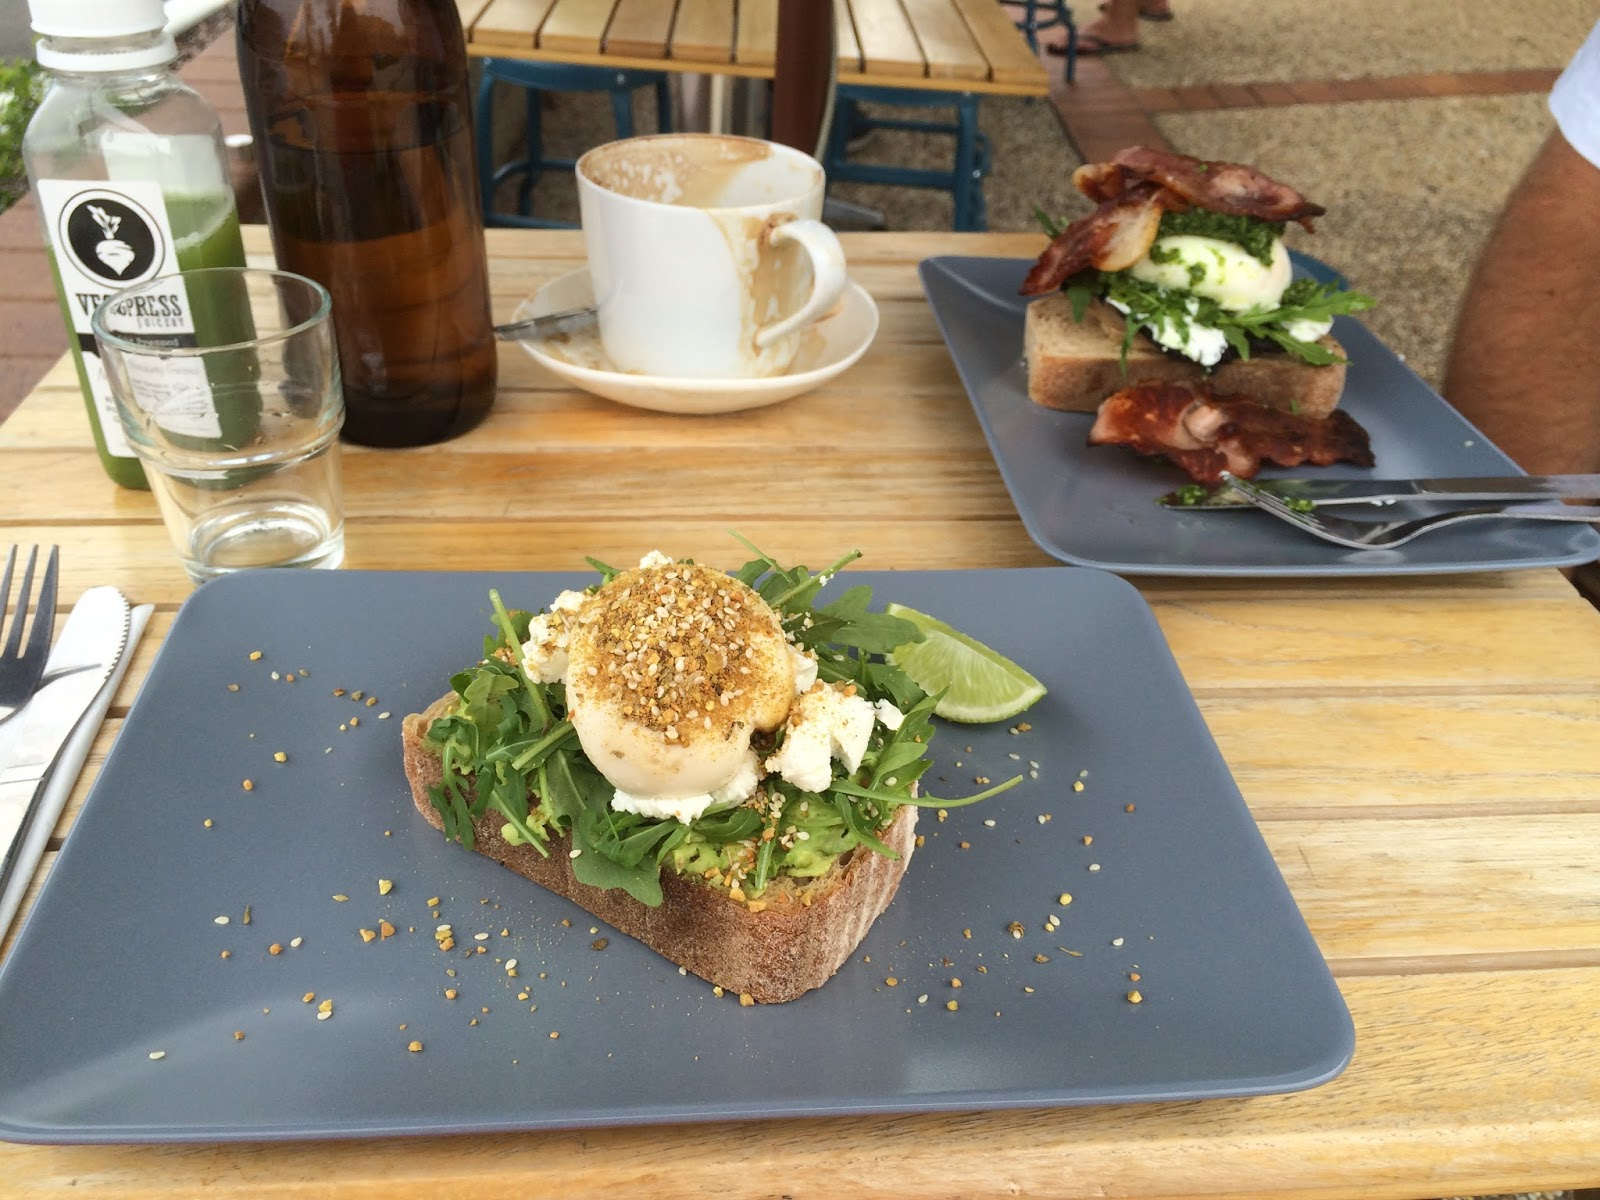 Brunch at Four Espresso Cafe Port Macquarie